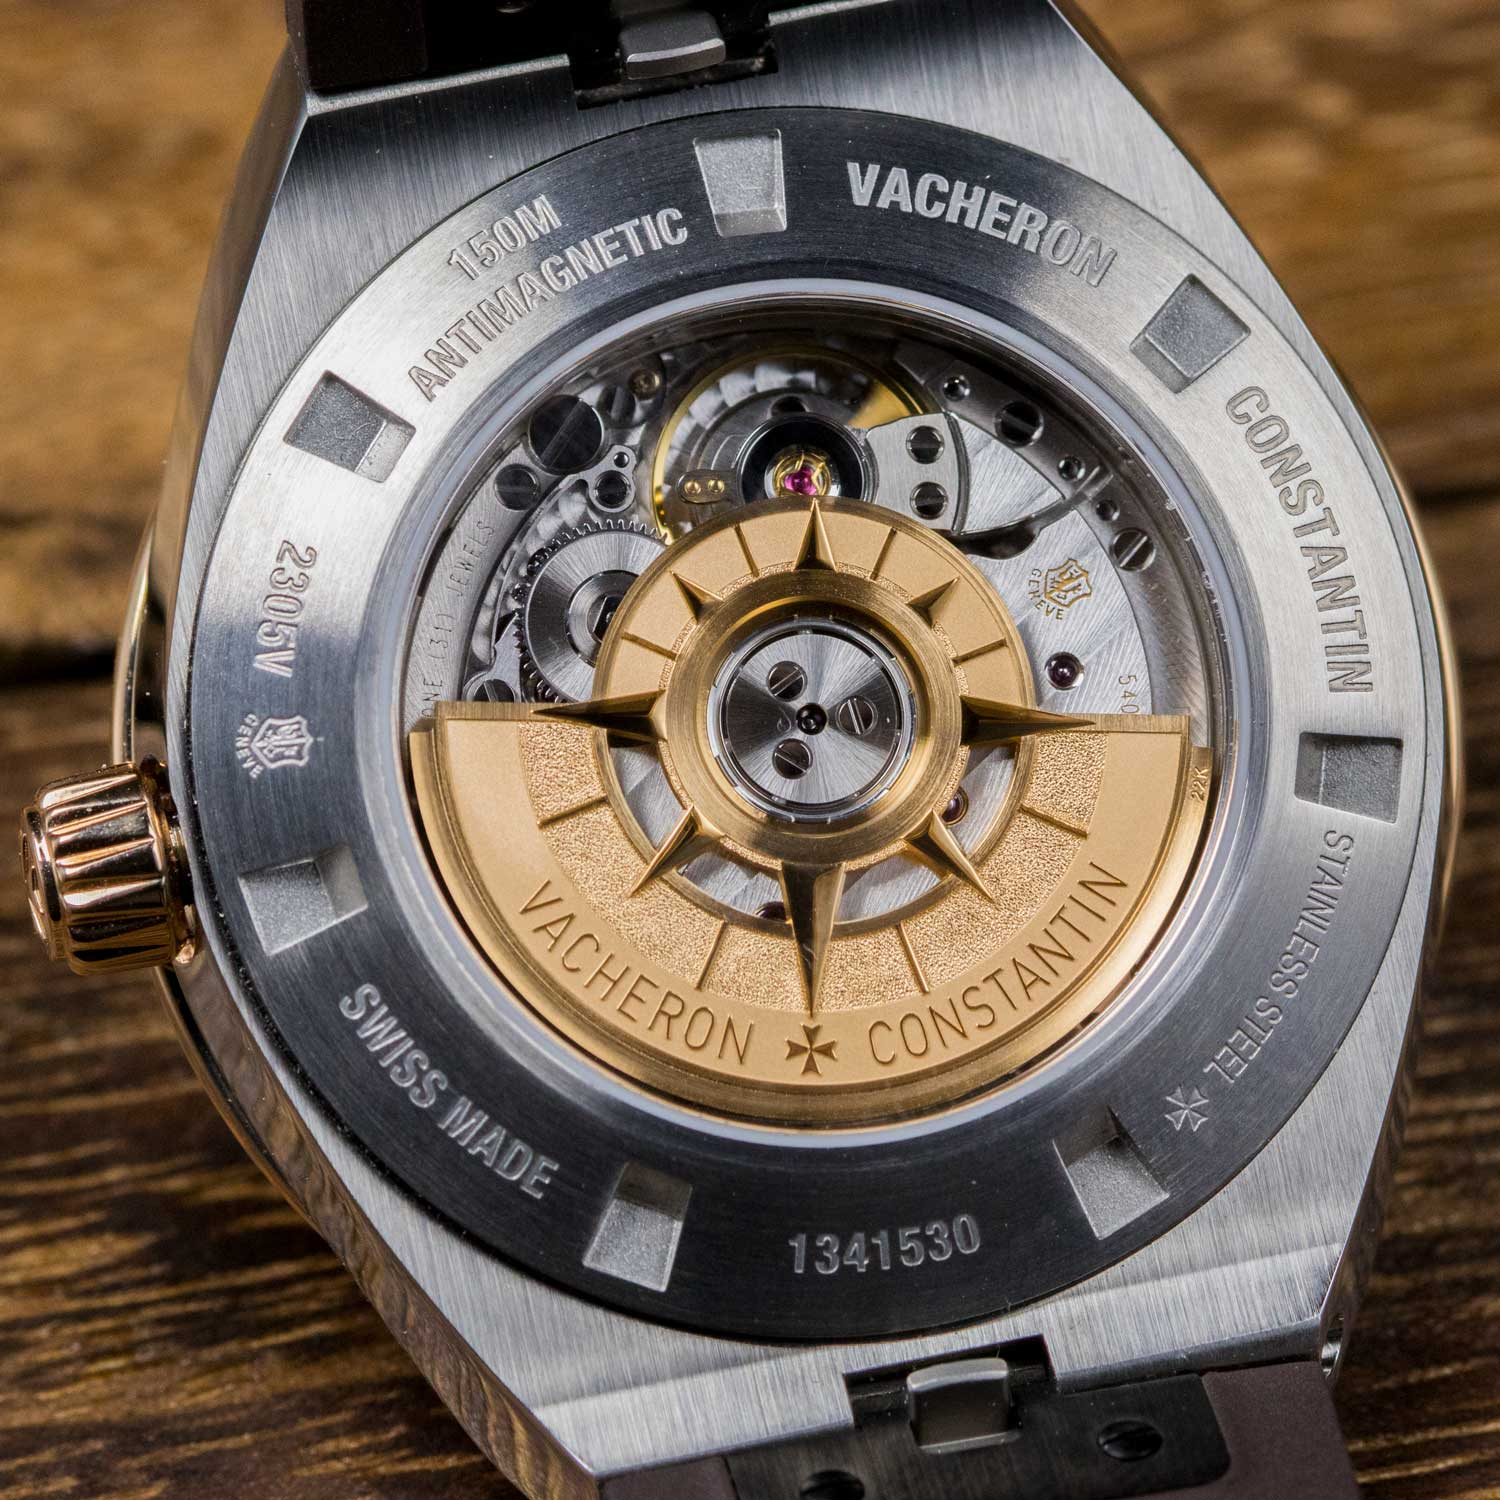 Caseback view of the Manufacture Caliber 5300